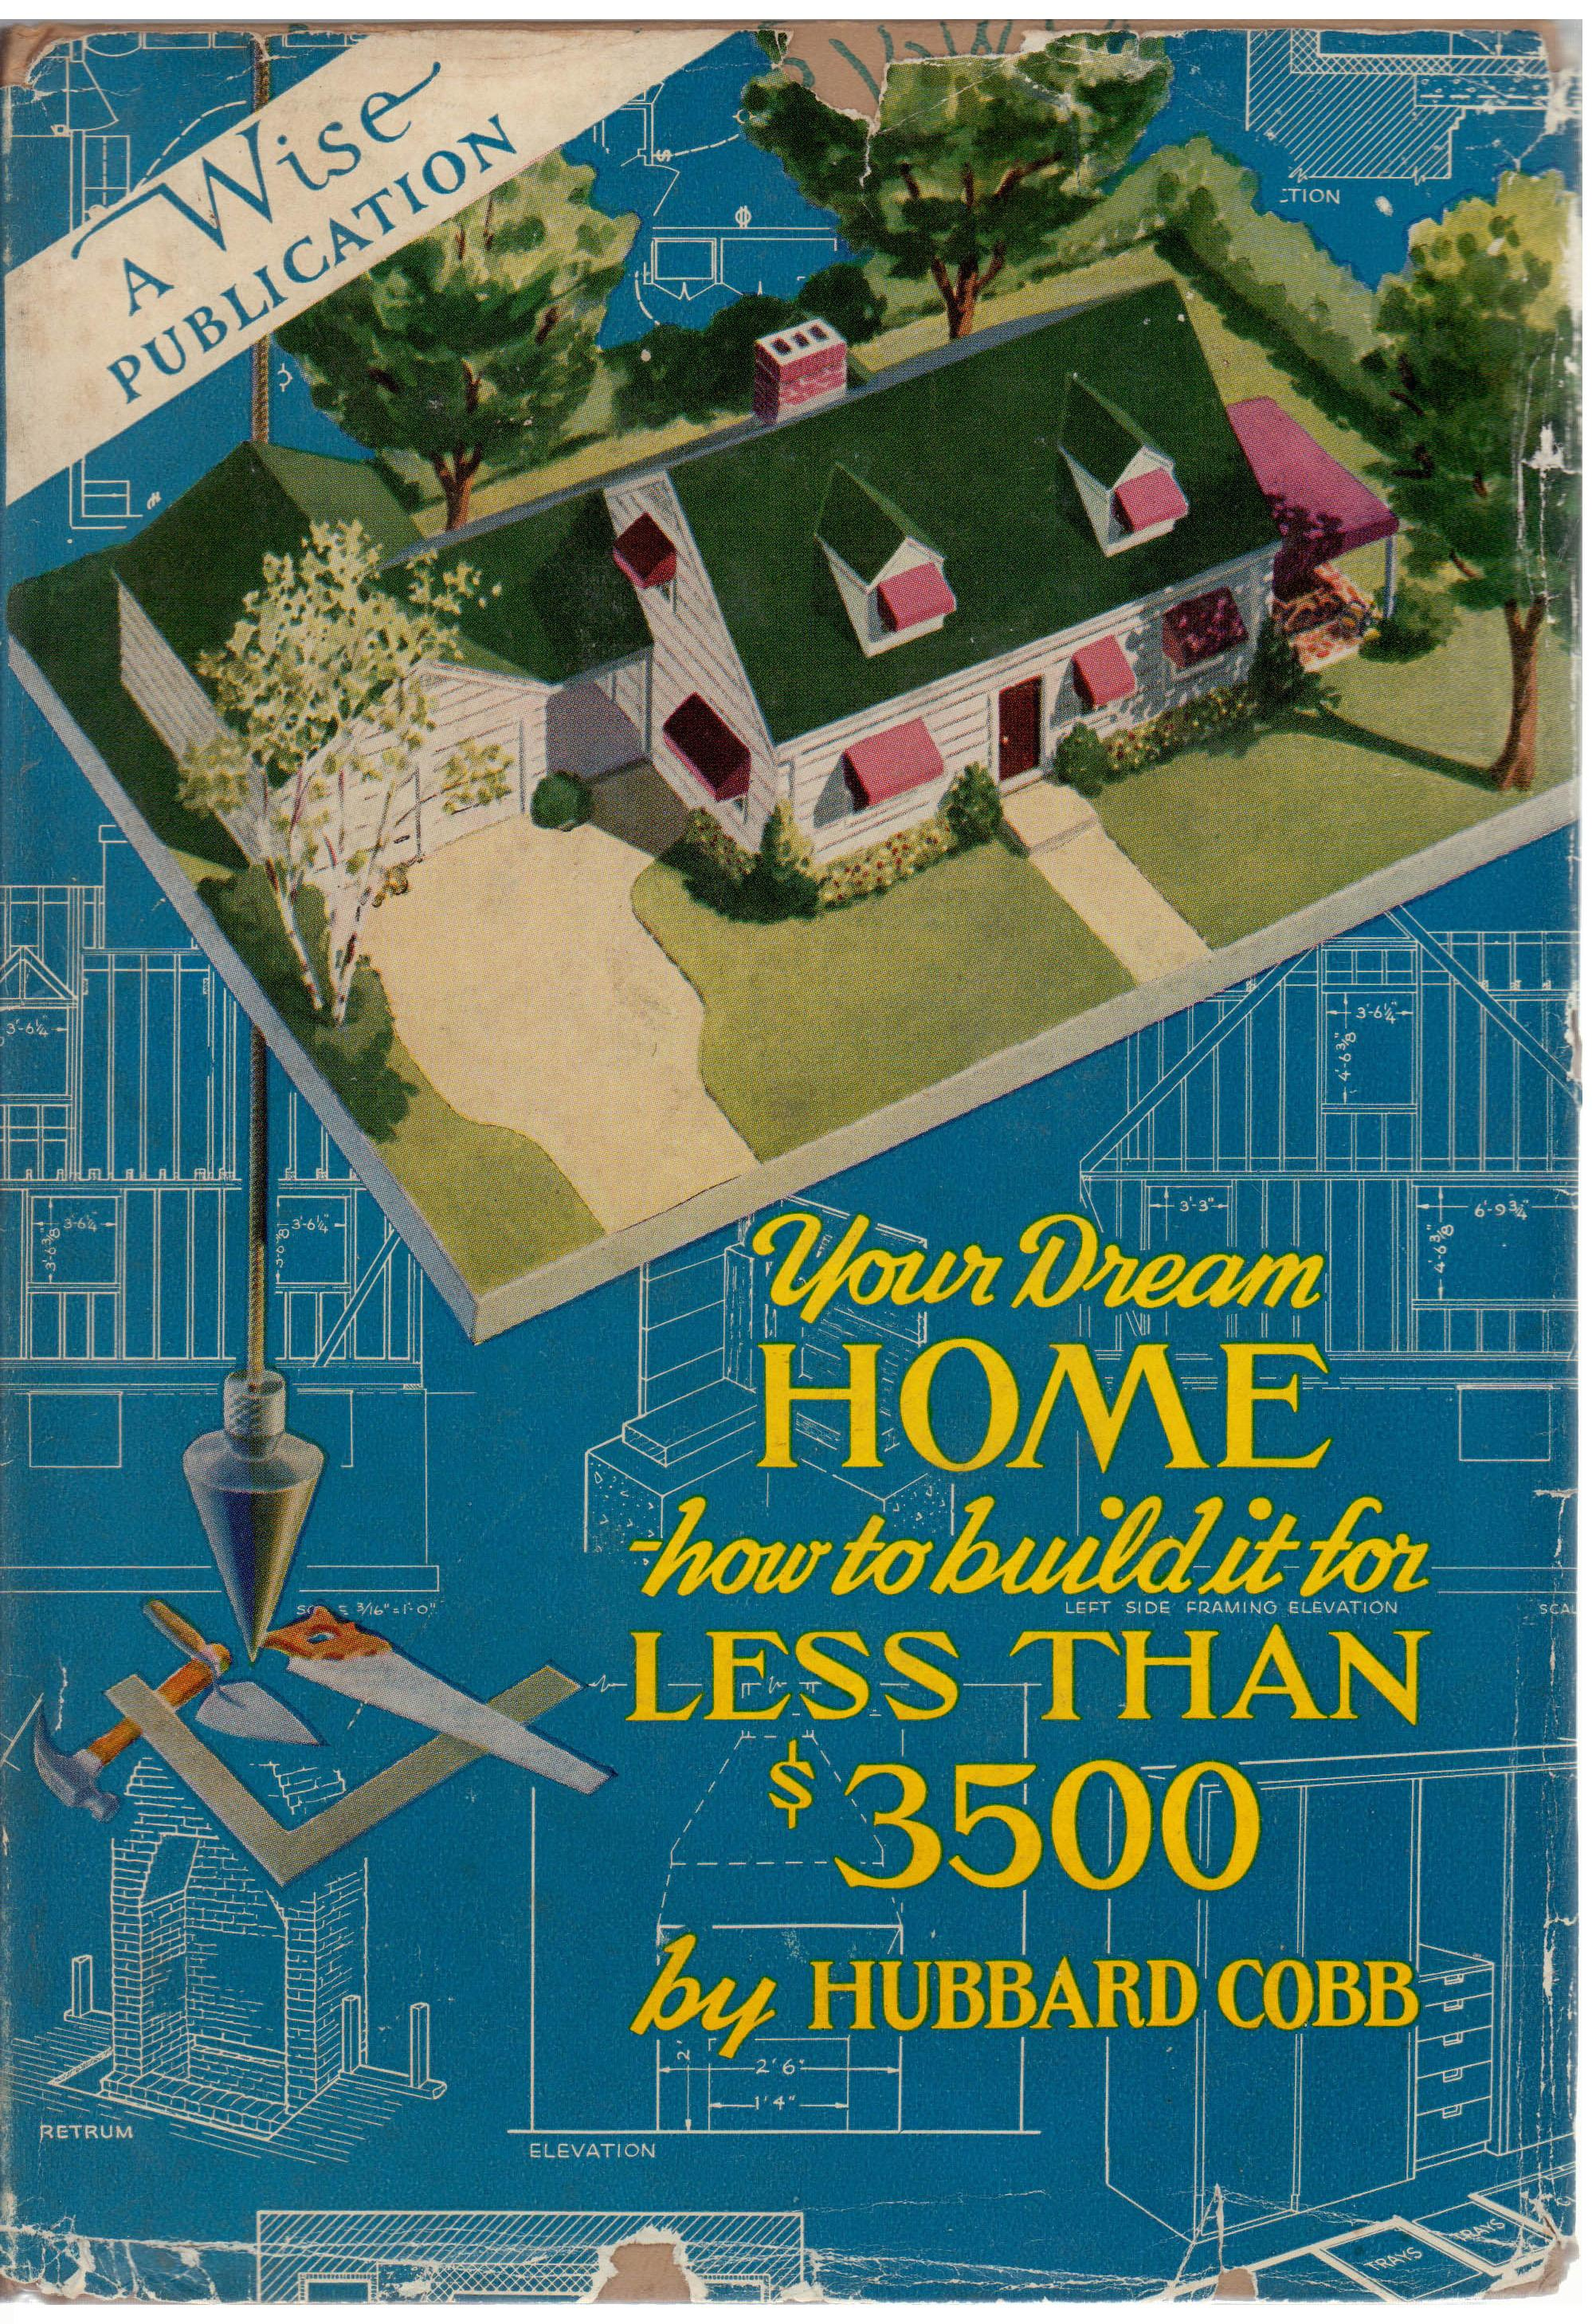 Your dream home how to build it by hubbard cobb chairish for Build dream home online for fun